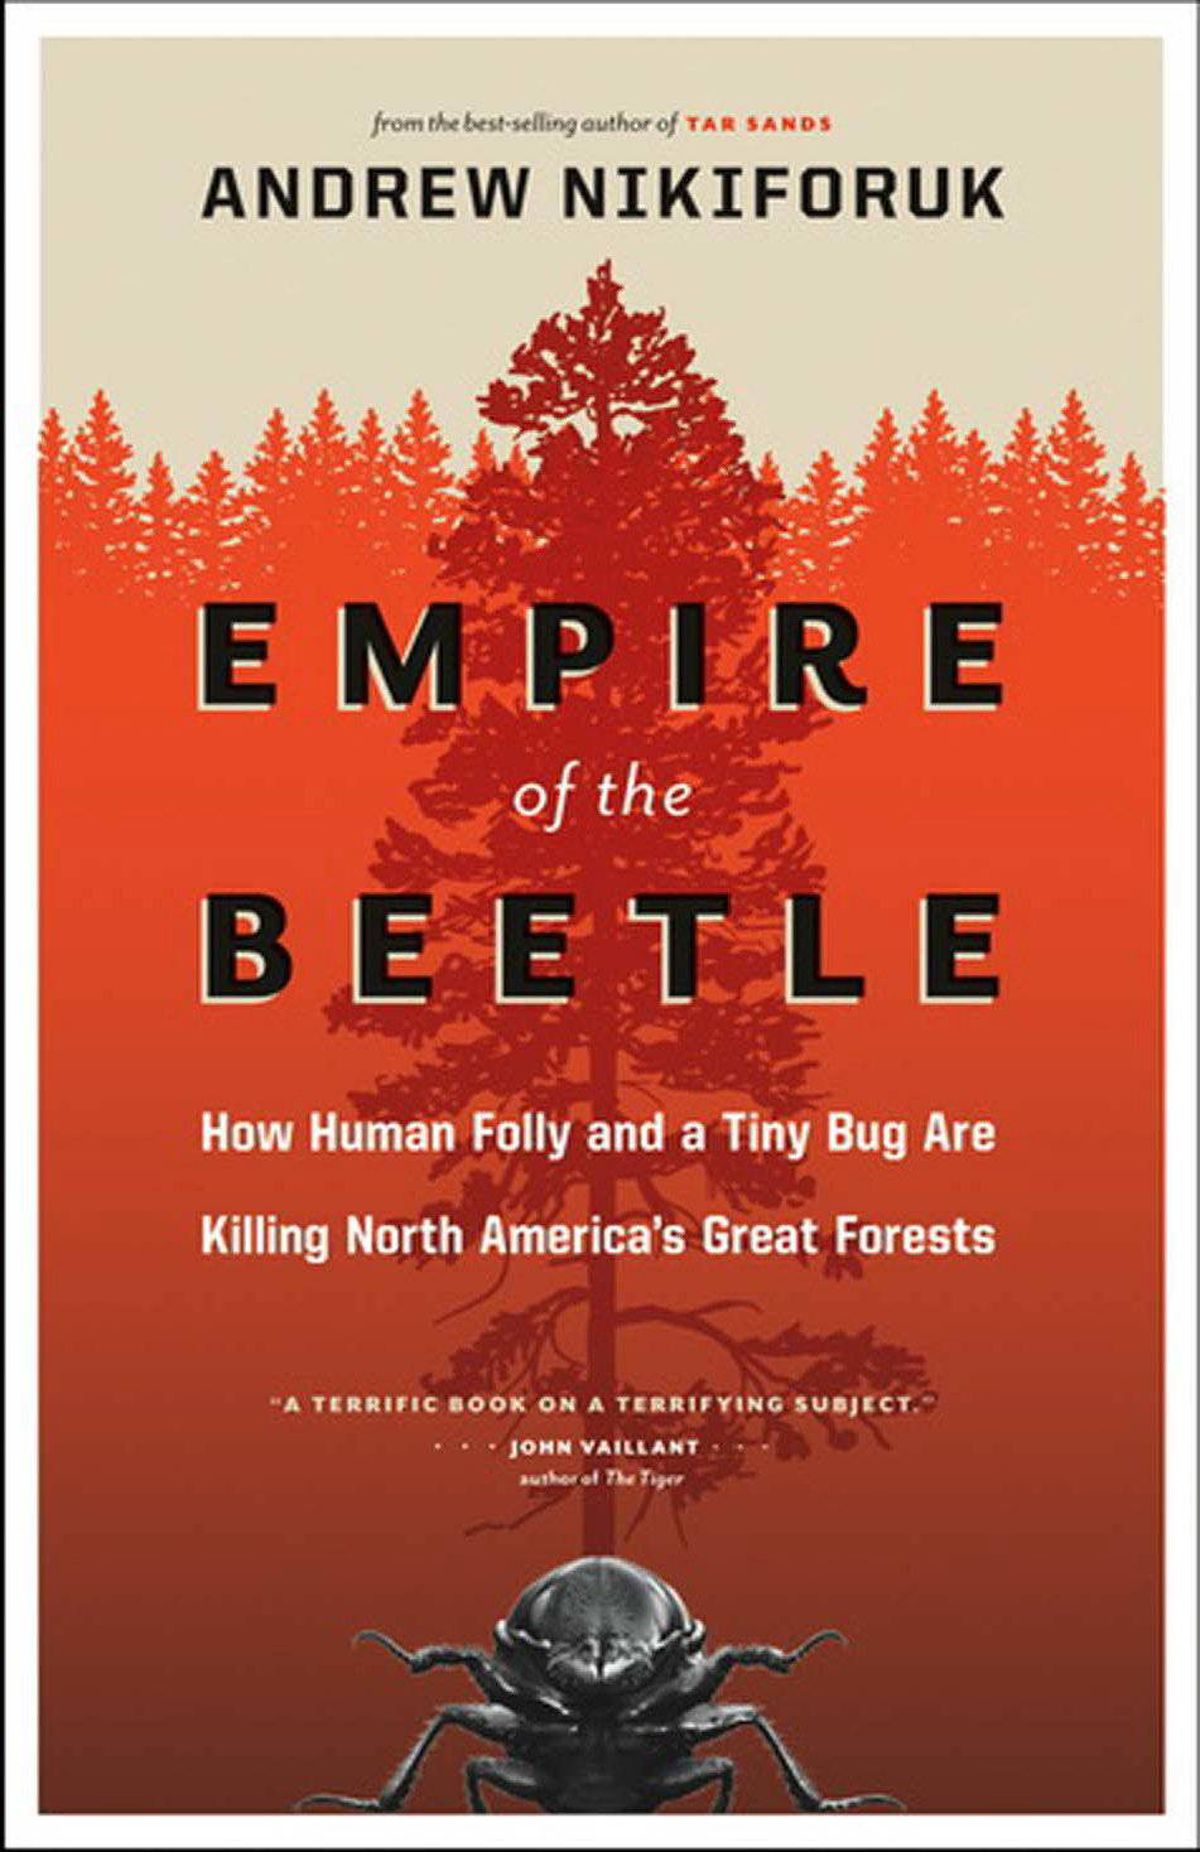 """EMPIRE OF THE BEETLE How Human Folly and a Tiny Bug are Killing North America's Great Forests By Andrew Nikiforuk (GreyStone) This important book is not just a primer on the recent rampages of the bark beetles that have killed more than 30 billion pine and spruce trees. It is not just a virtual gathering of the dozens of scientists and others who have grappled with the beetle onslaught. It is a principled reflection on """"the pathology of resource management."""" – William Bryant Logan"""